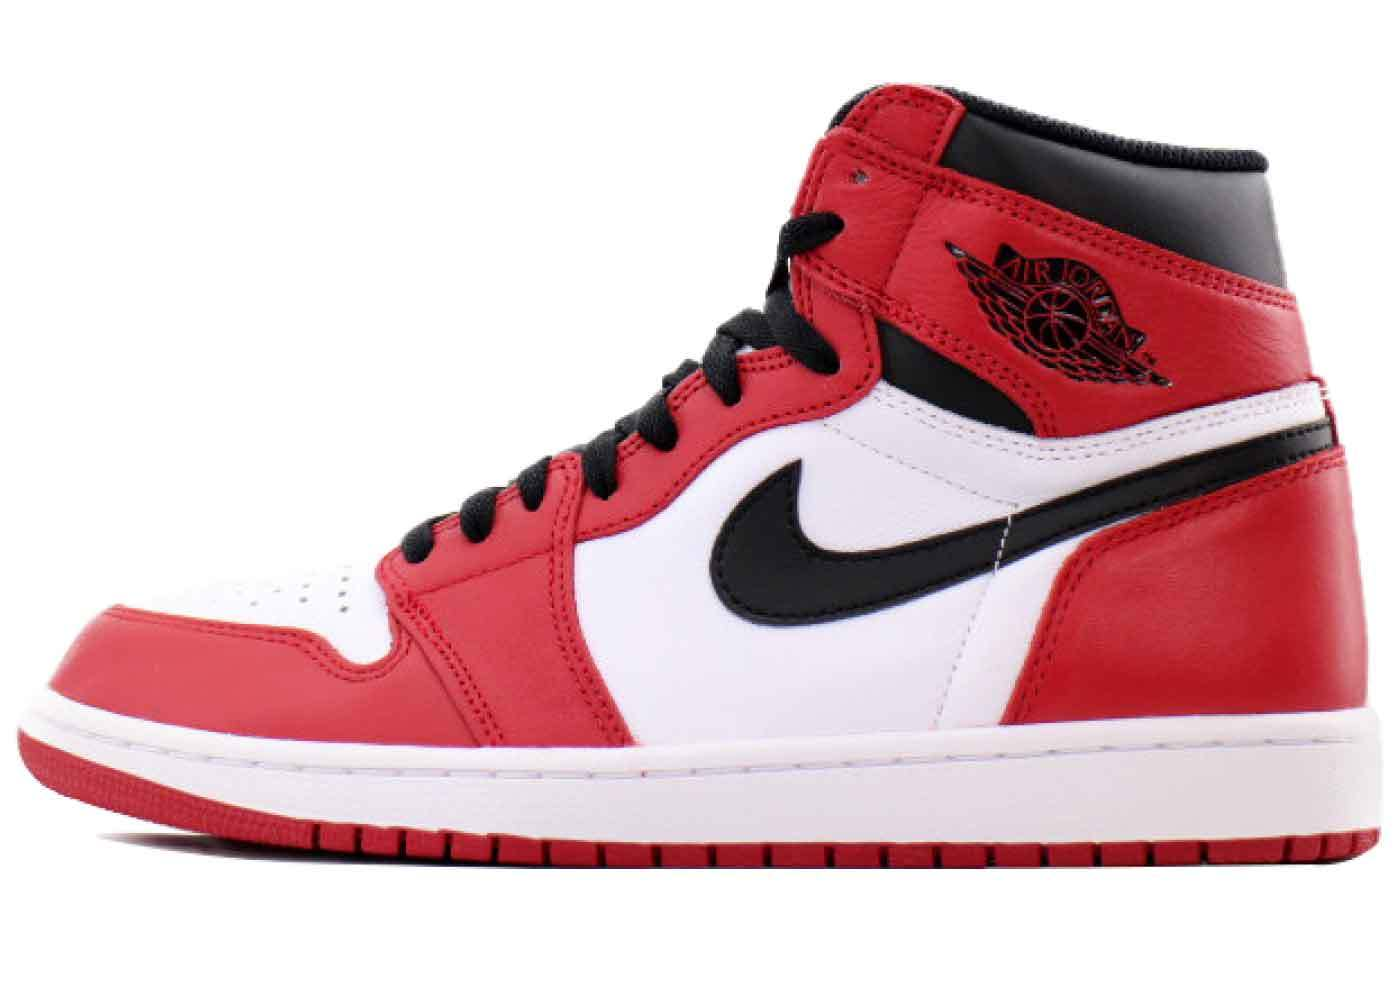 Nike Air Jordan 1 Retro Chicago (2015)の写真